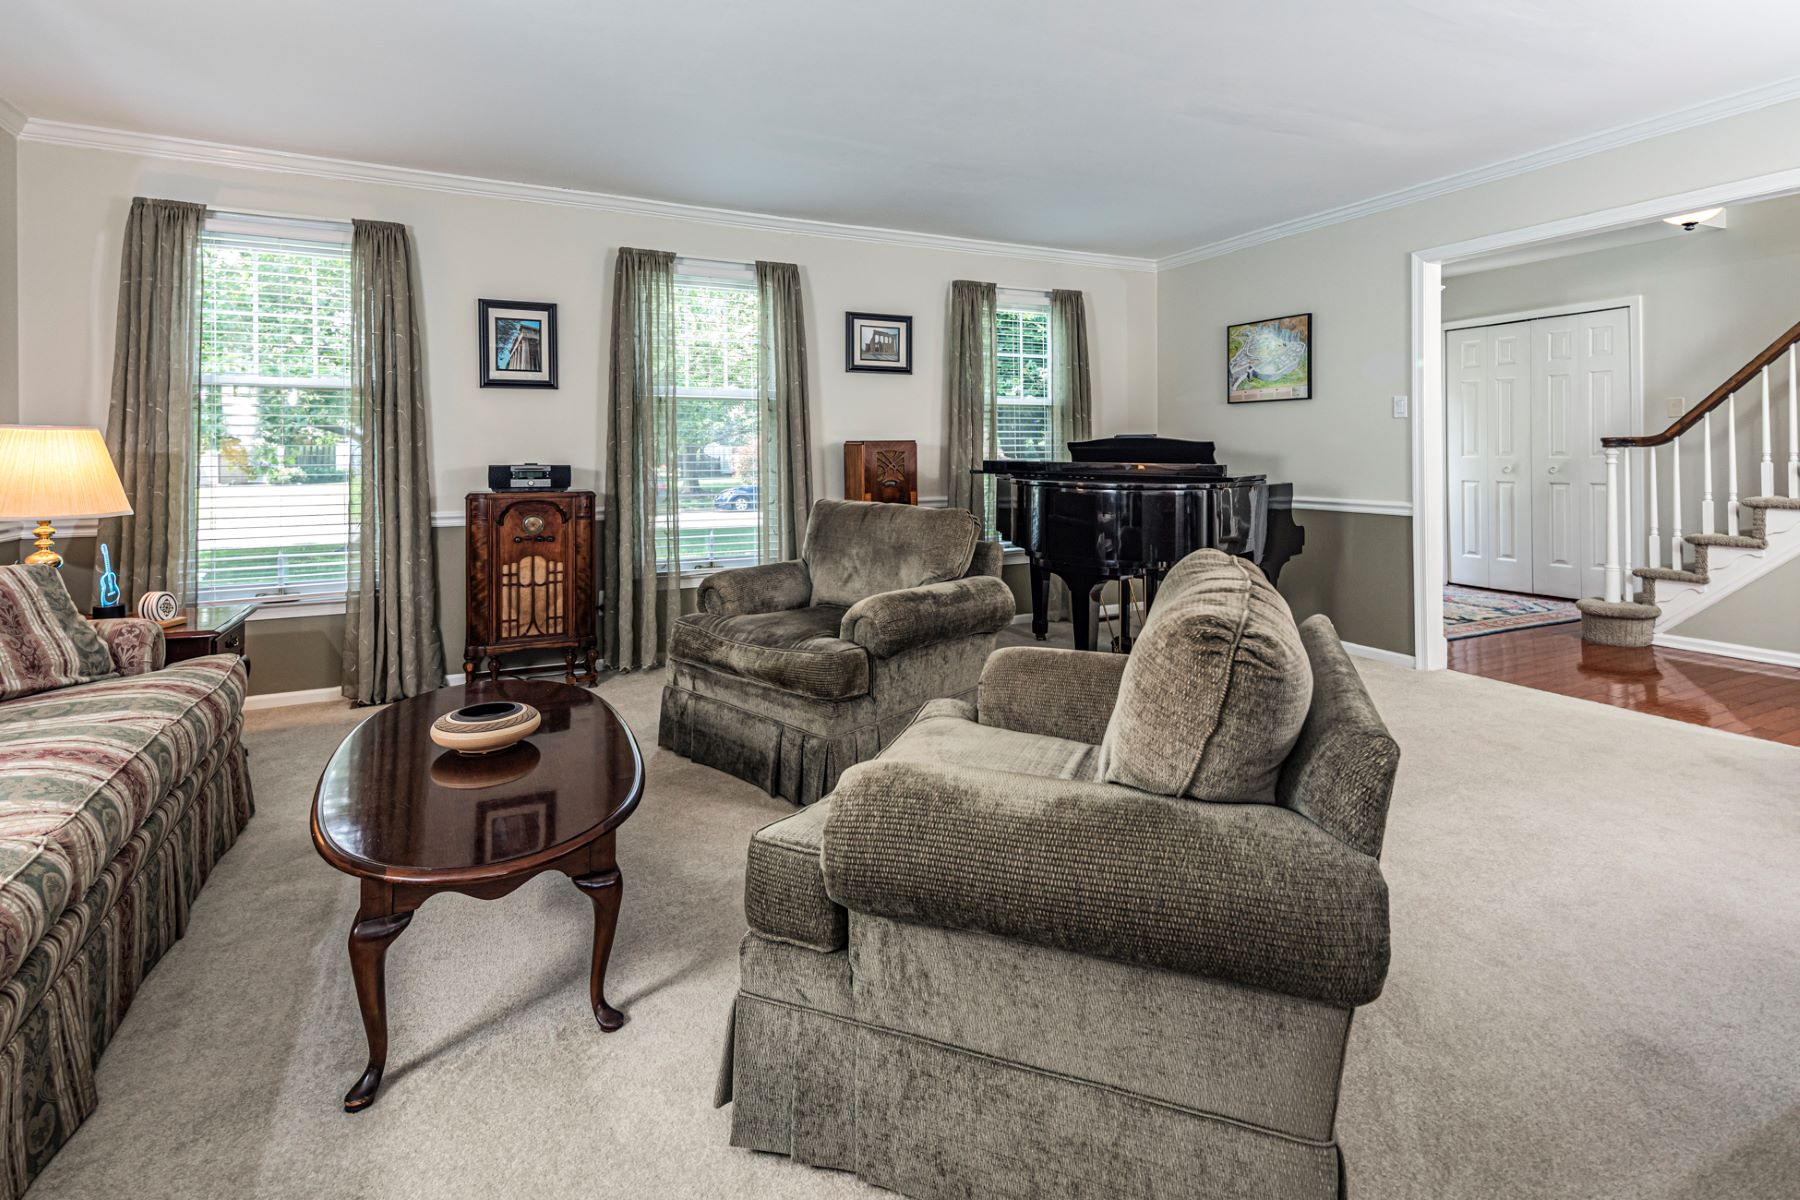 Additional photo for property listing at Remodeled with a Nod to Craftsman Style 22 Hamilton Court, Lawrenceville, New Jersey 08648 United States